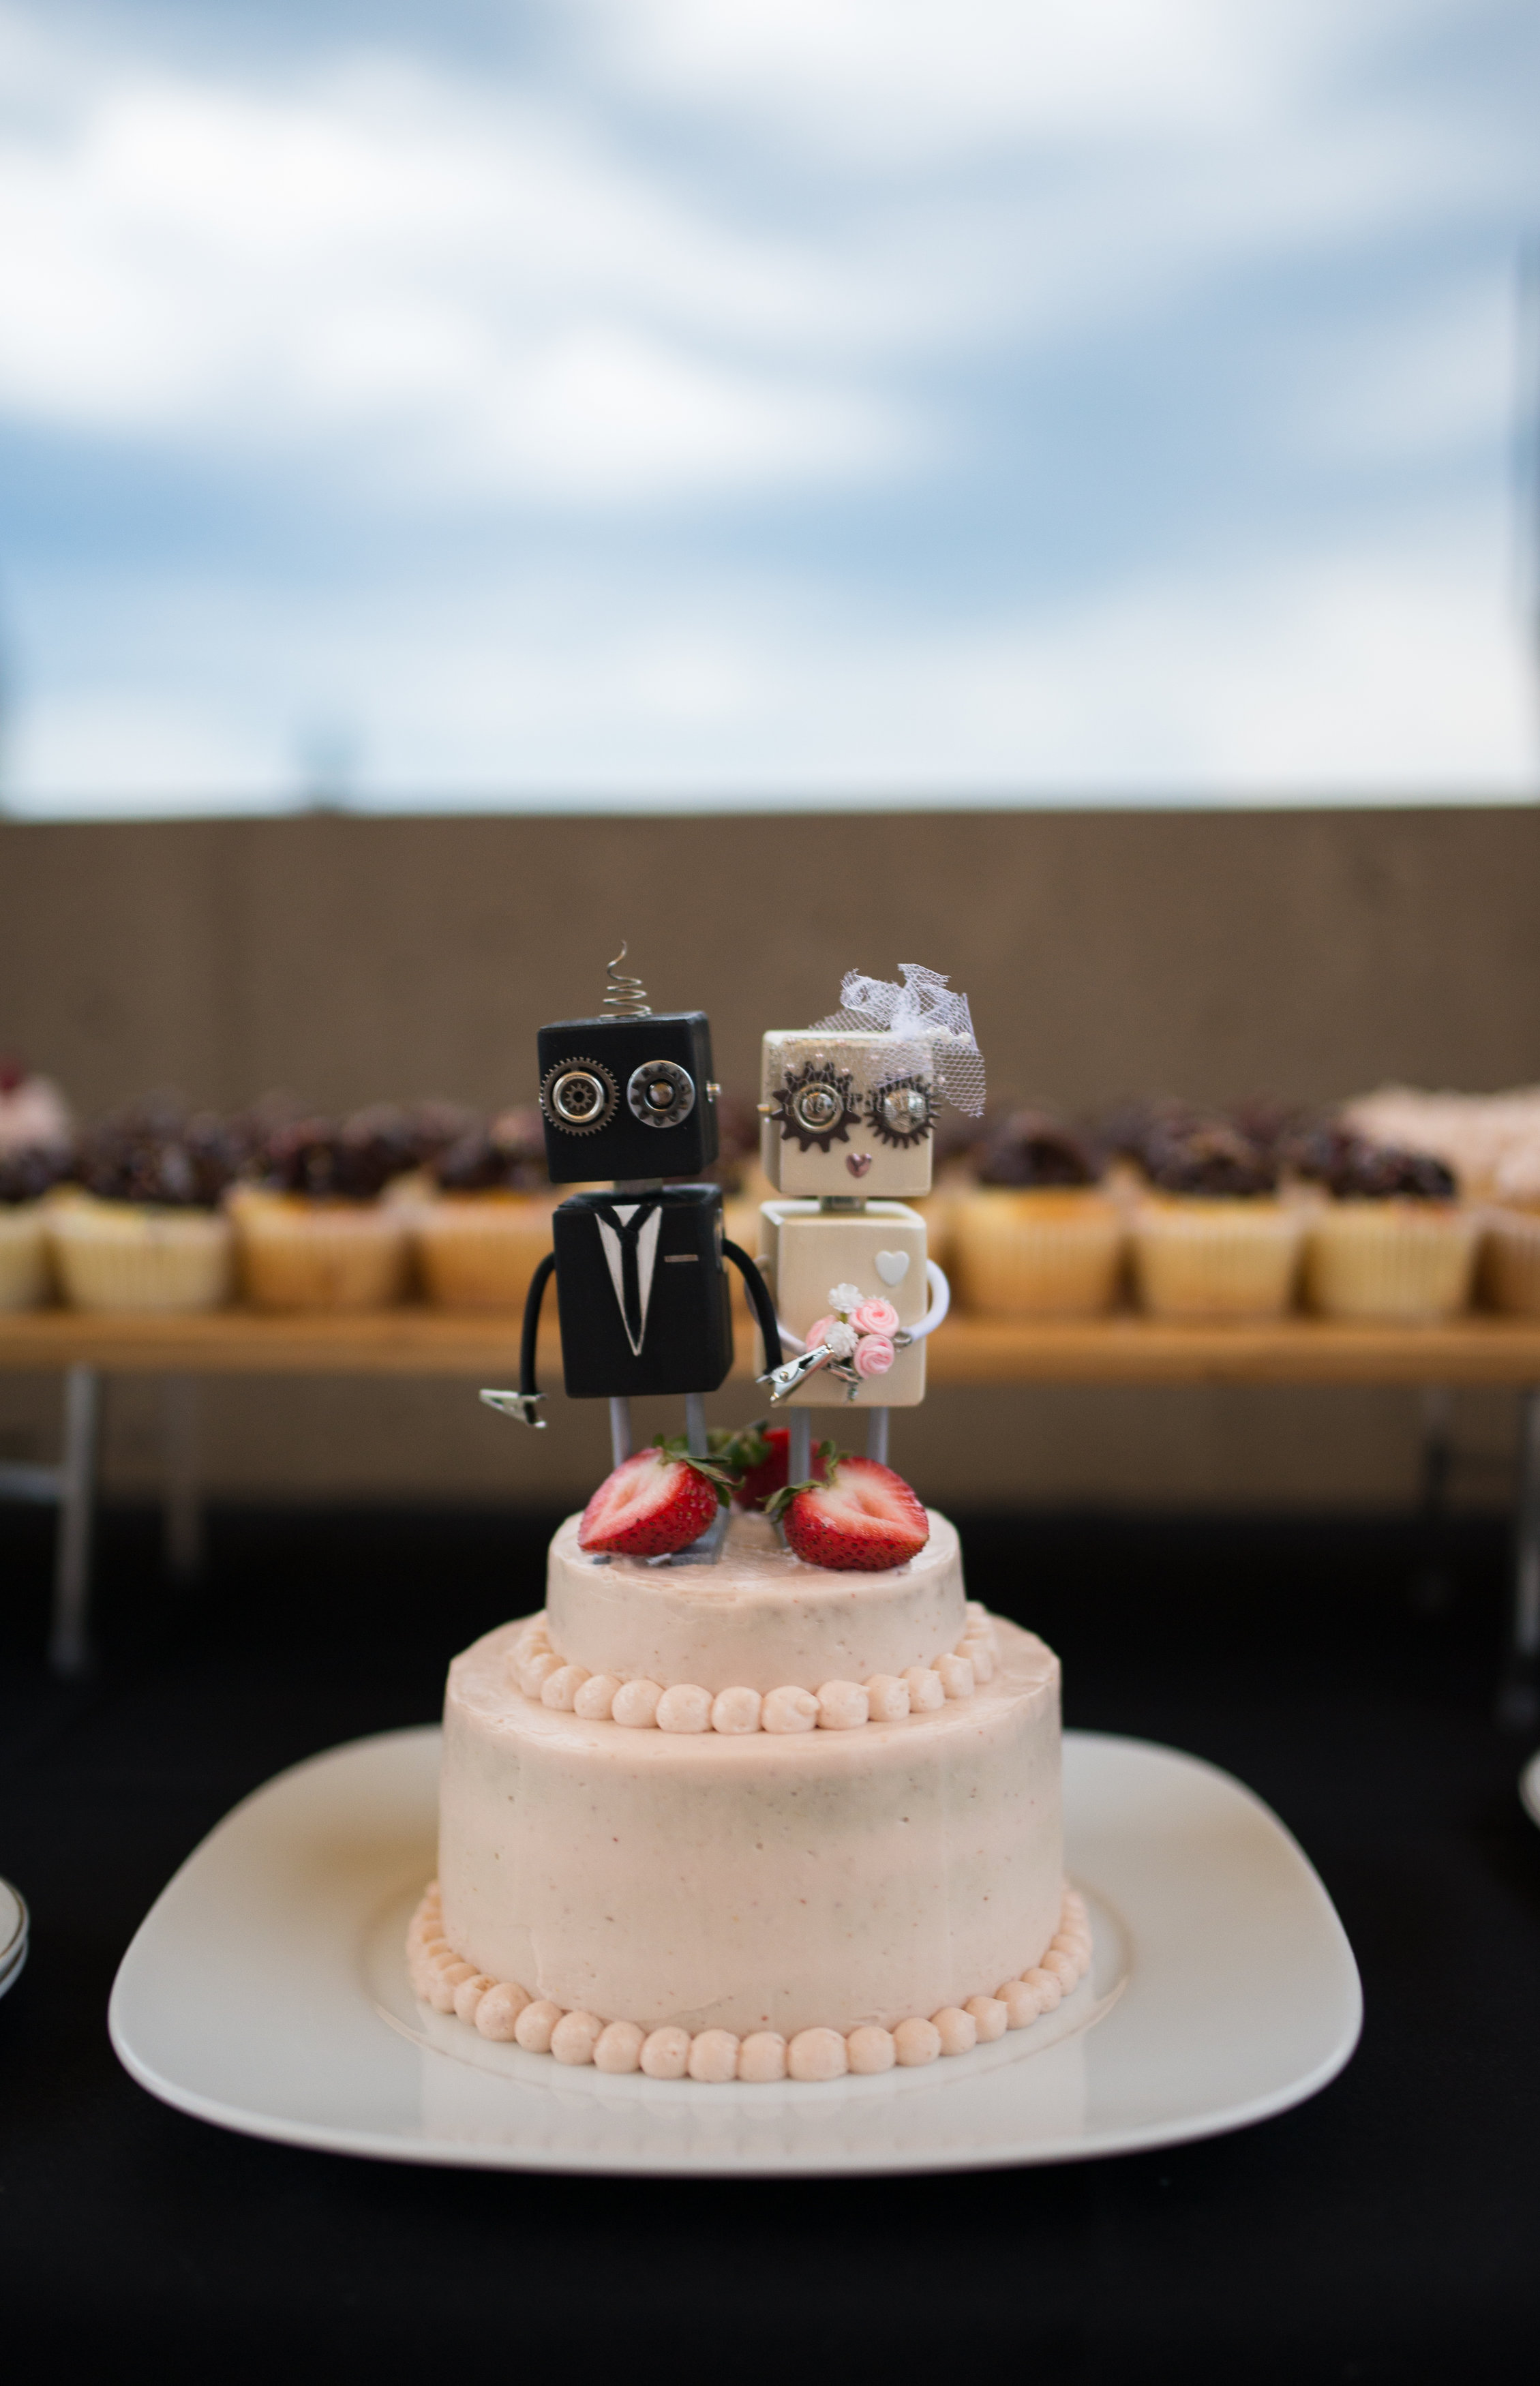 Robot Cake Toppers - They can be found on Etsy.  AdoptabotWorkShop